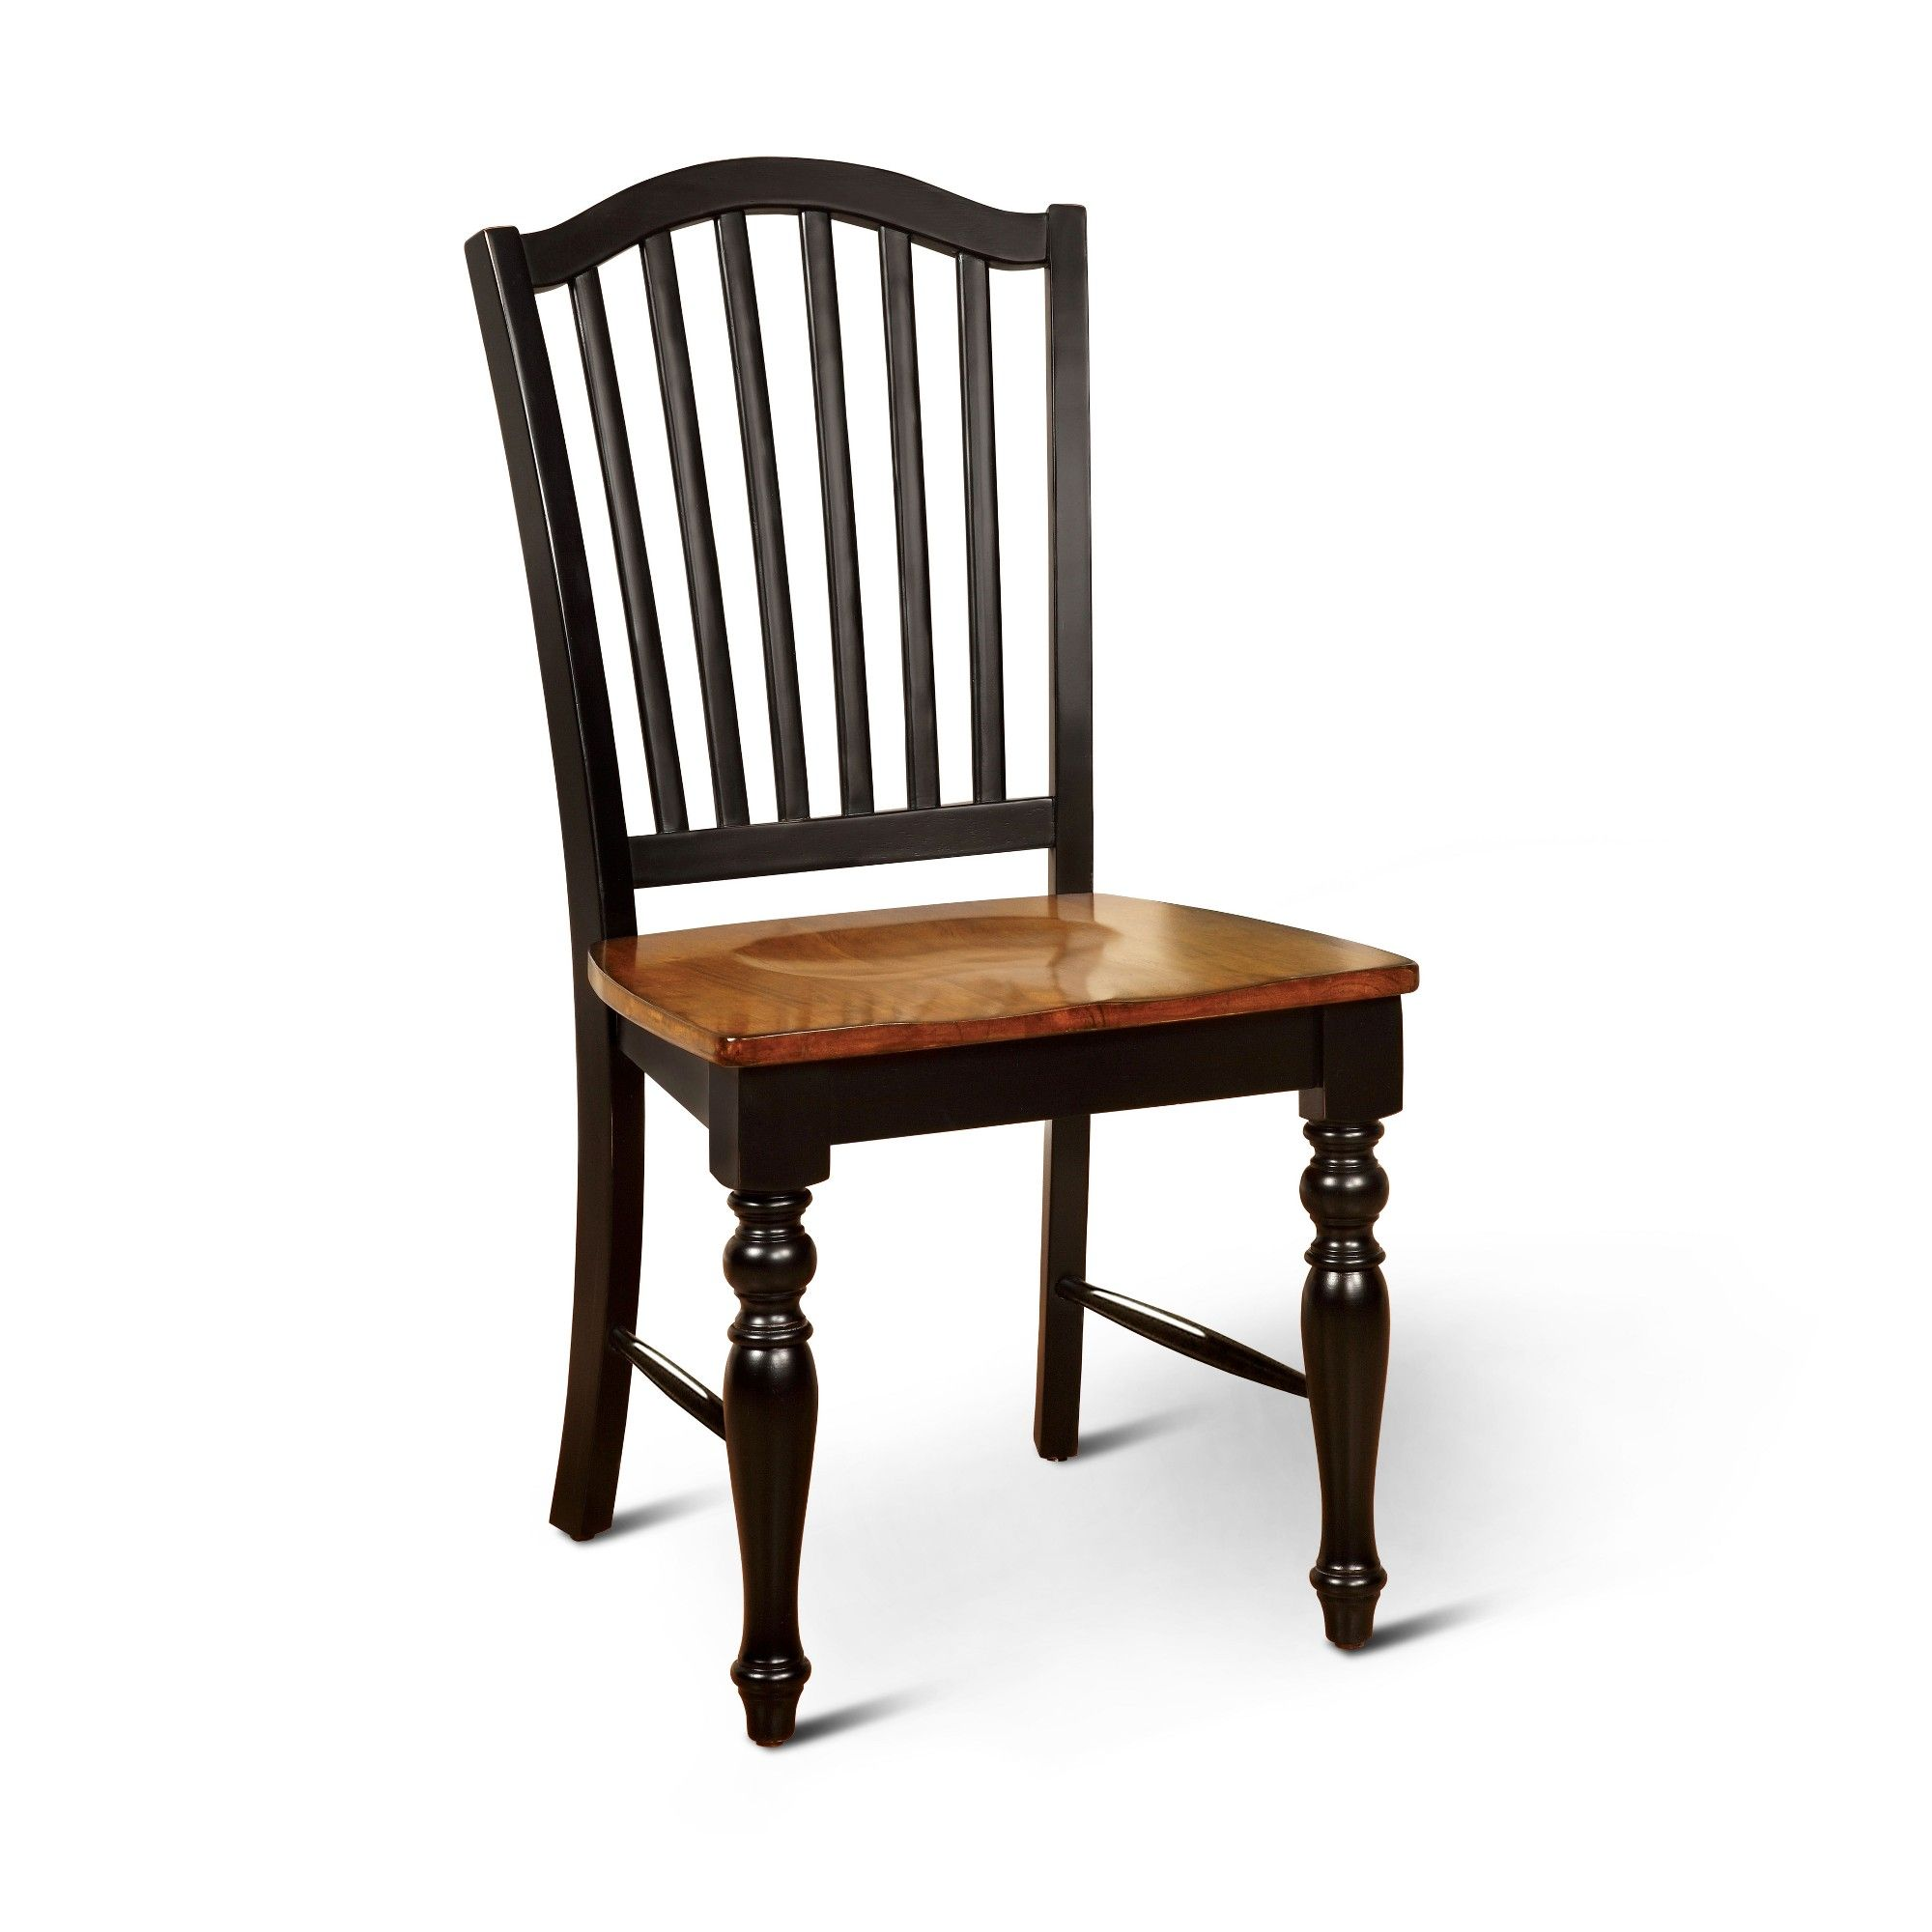 Set of 2 Jameson Country Style Wooden Chair Black/Oak